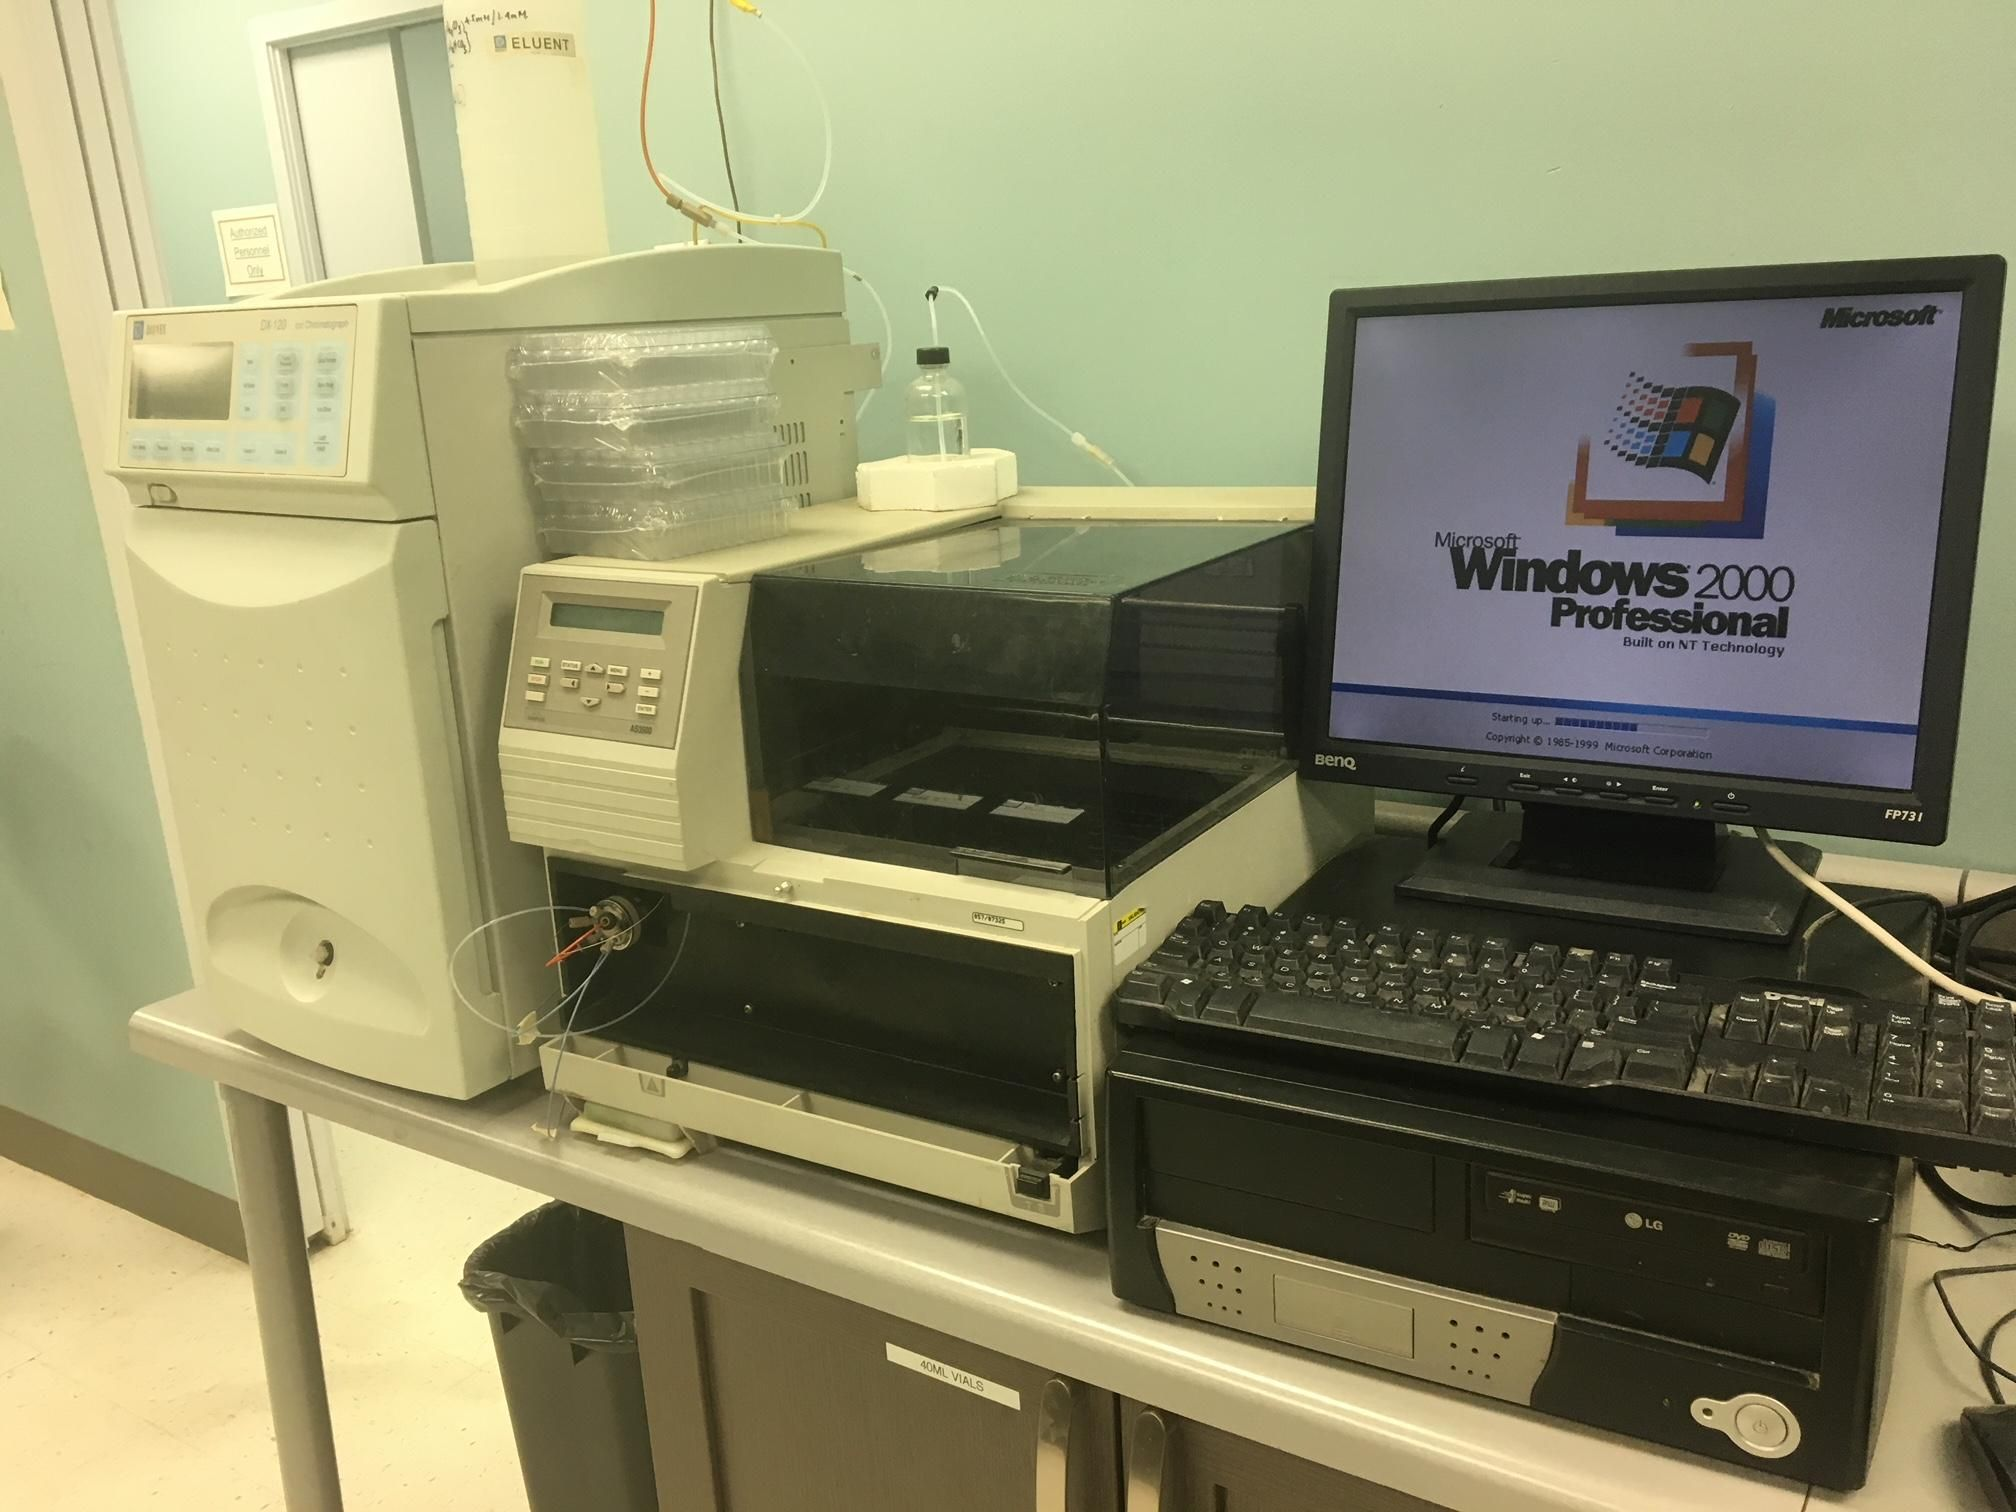 Dionex DX-120 Ion Chromatograph, A/sampler, PC, Peaknet PLUG&play [2 TWIN UNITS]